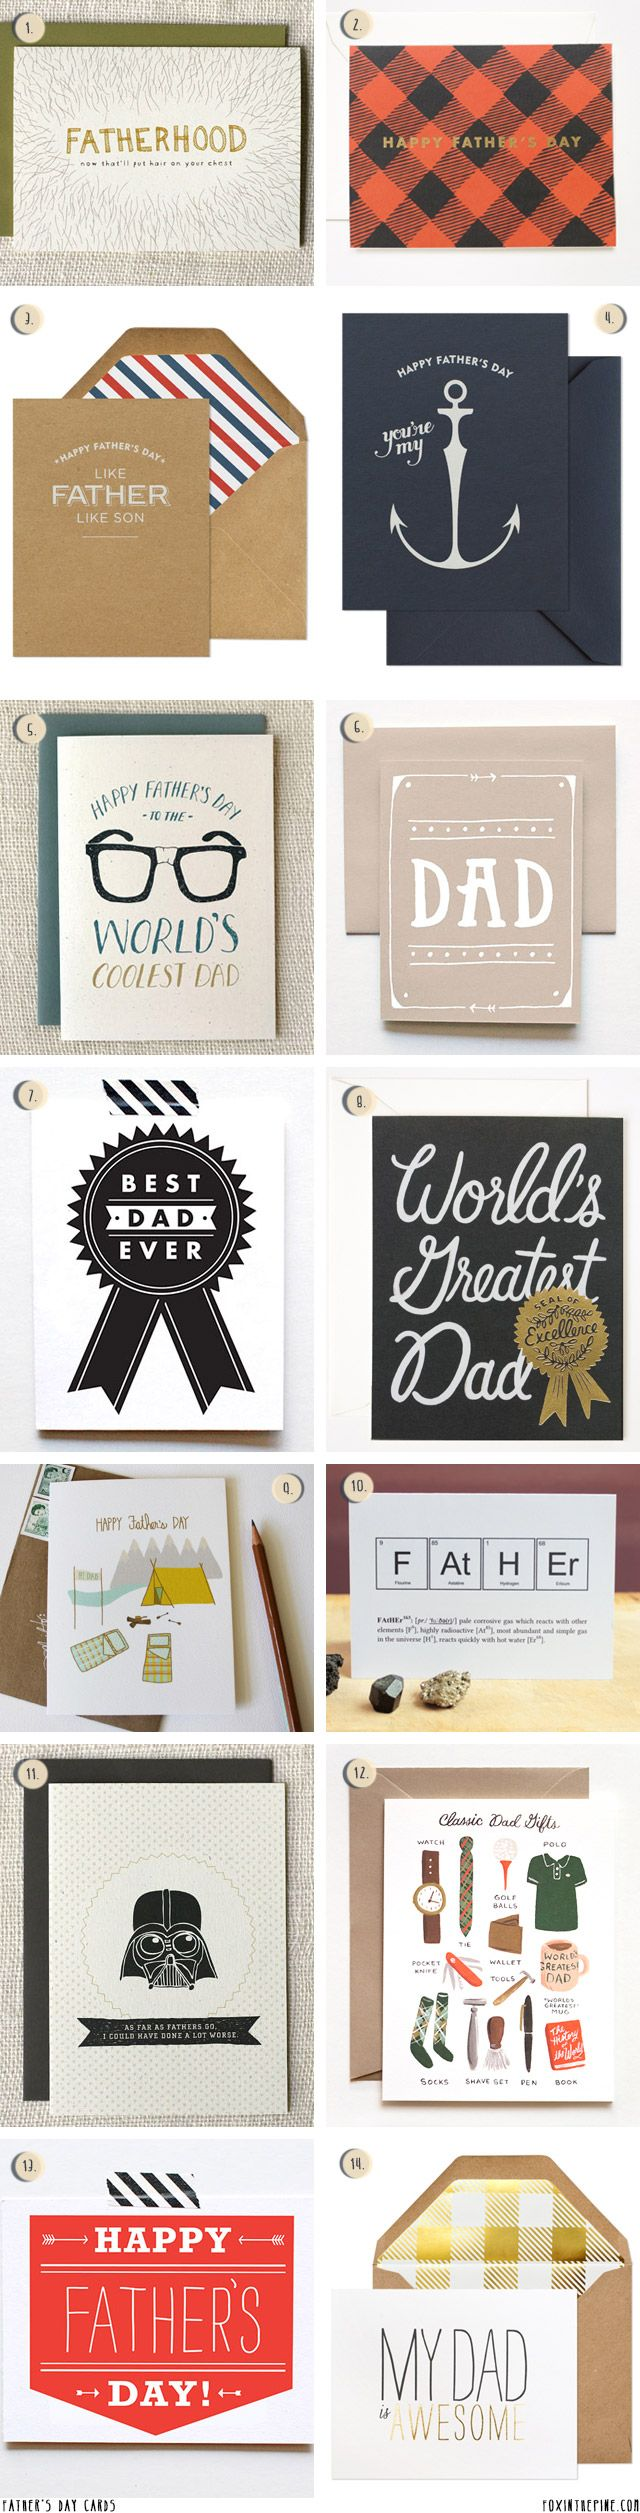 Fathers Day cards   //   FOXINTHEPINE.COM...